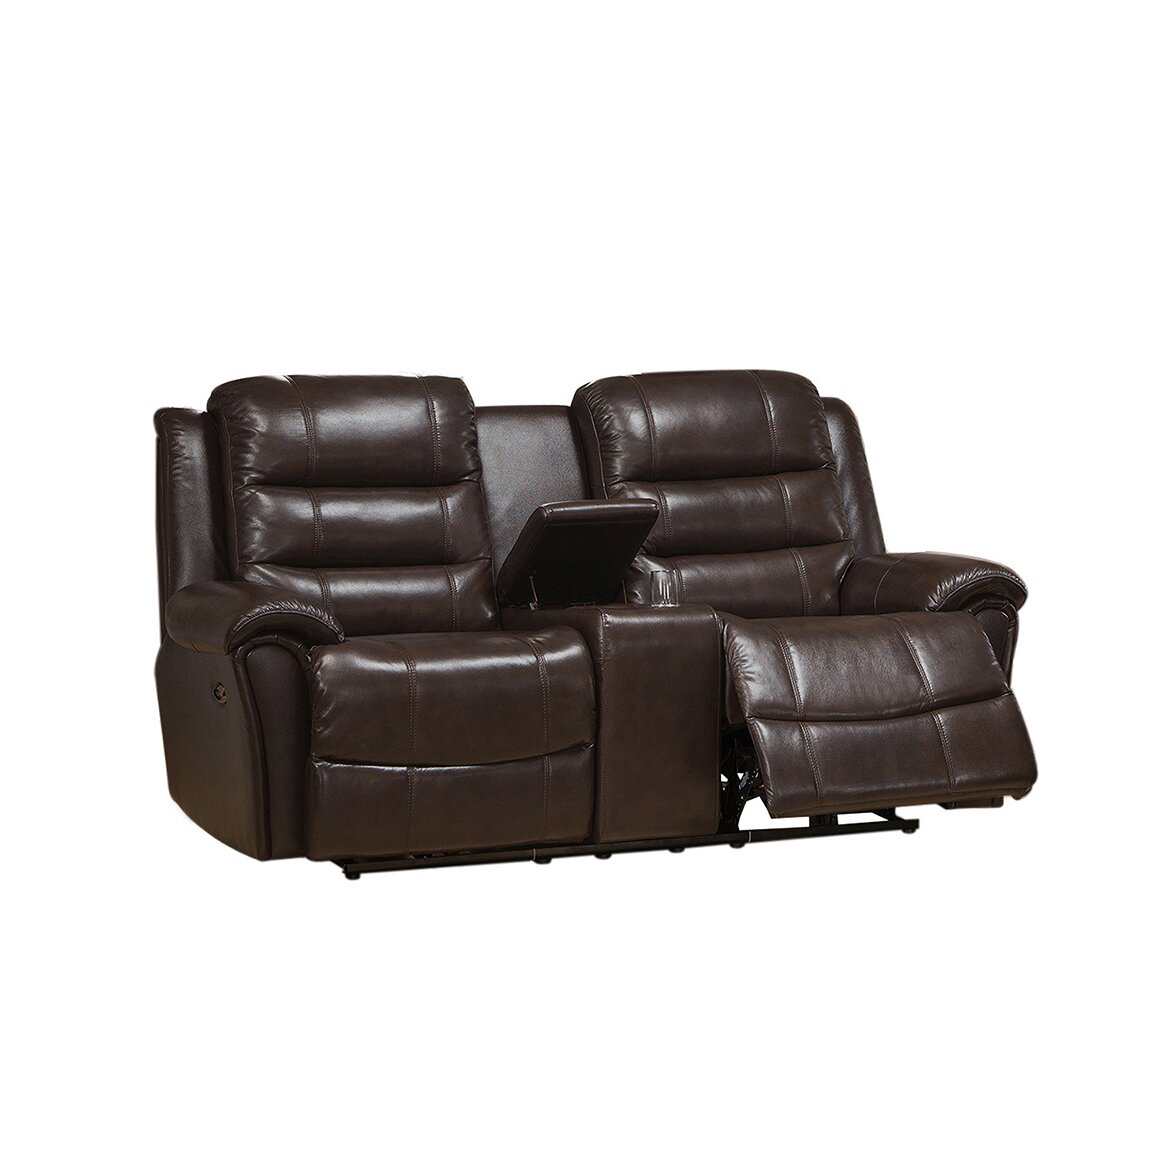 Astoria leather recliner sofa and loveseat set wayfair Reclining leather sofa and loveseat